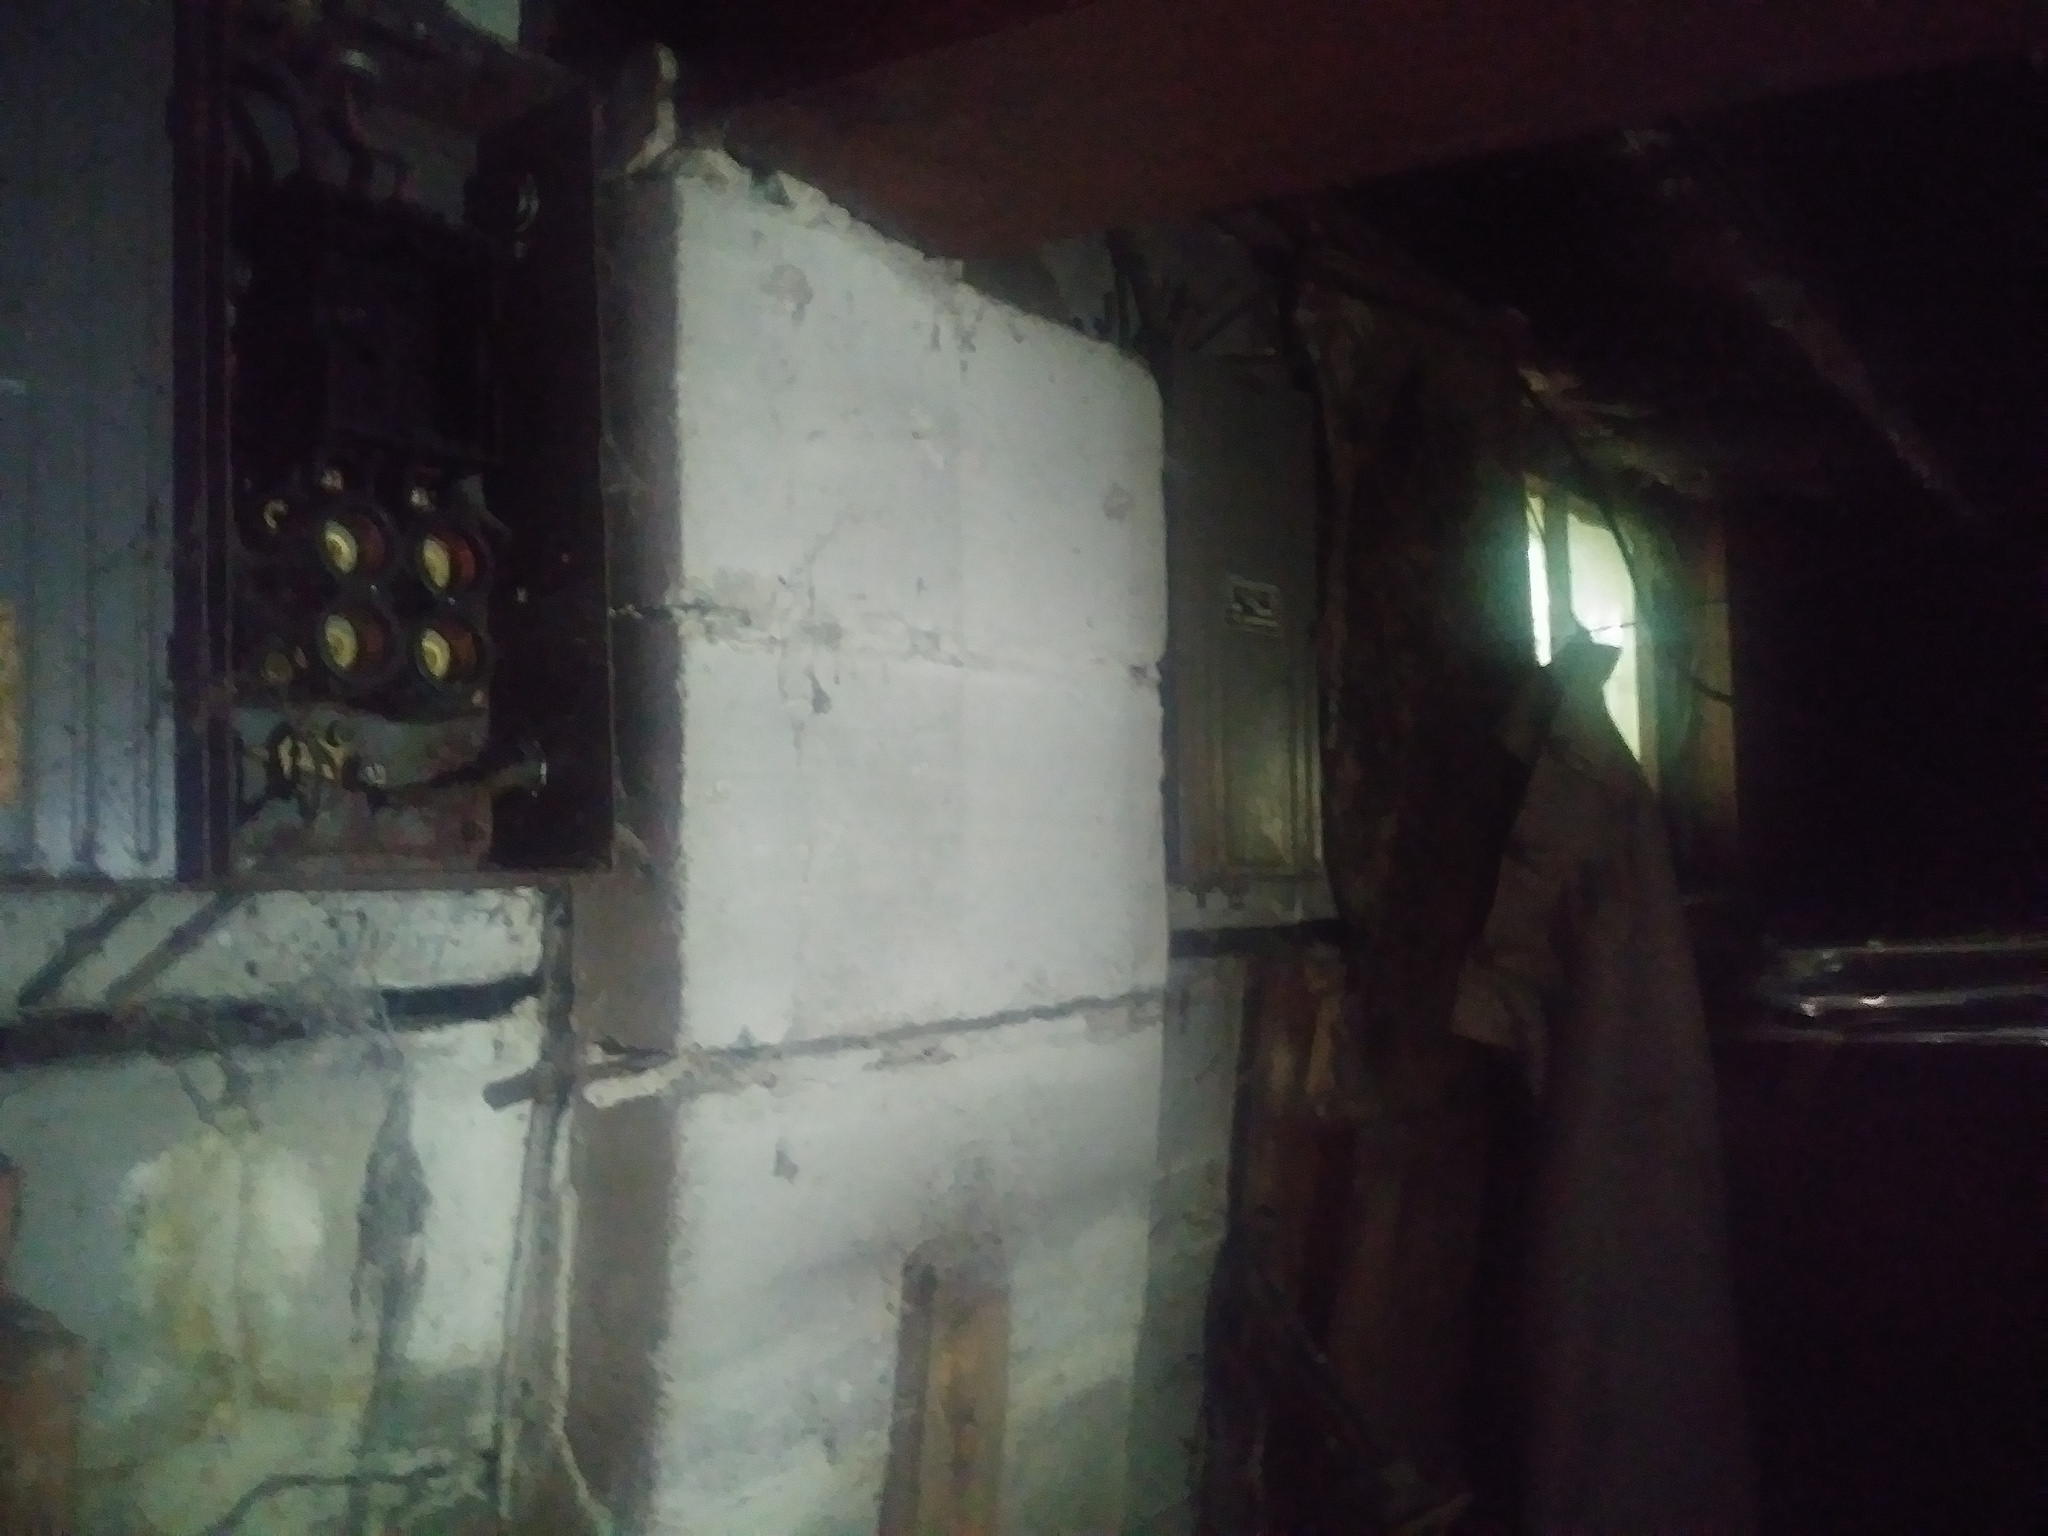 Foundation wall cracked and leaning inward.-35244954983_06496f769f_k.jpg